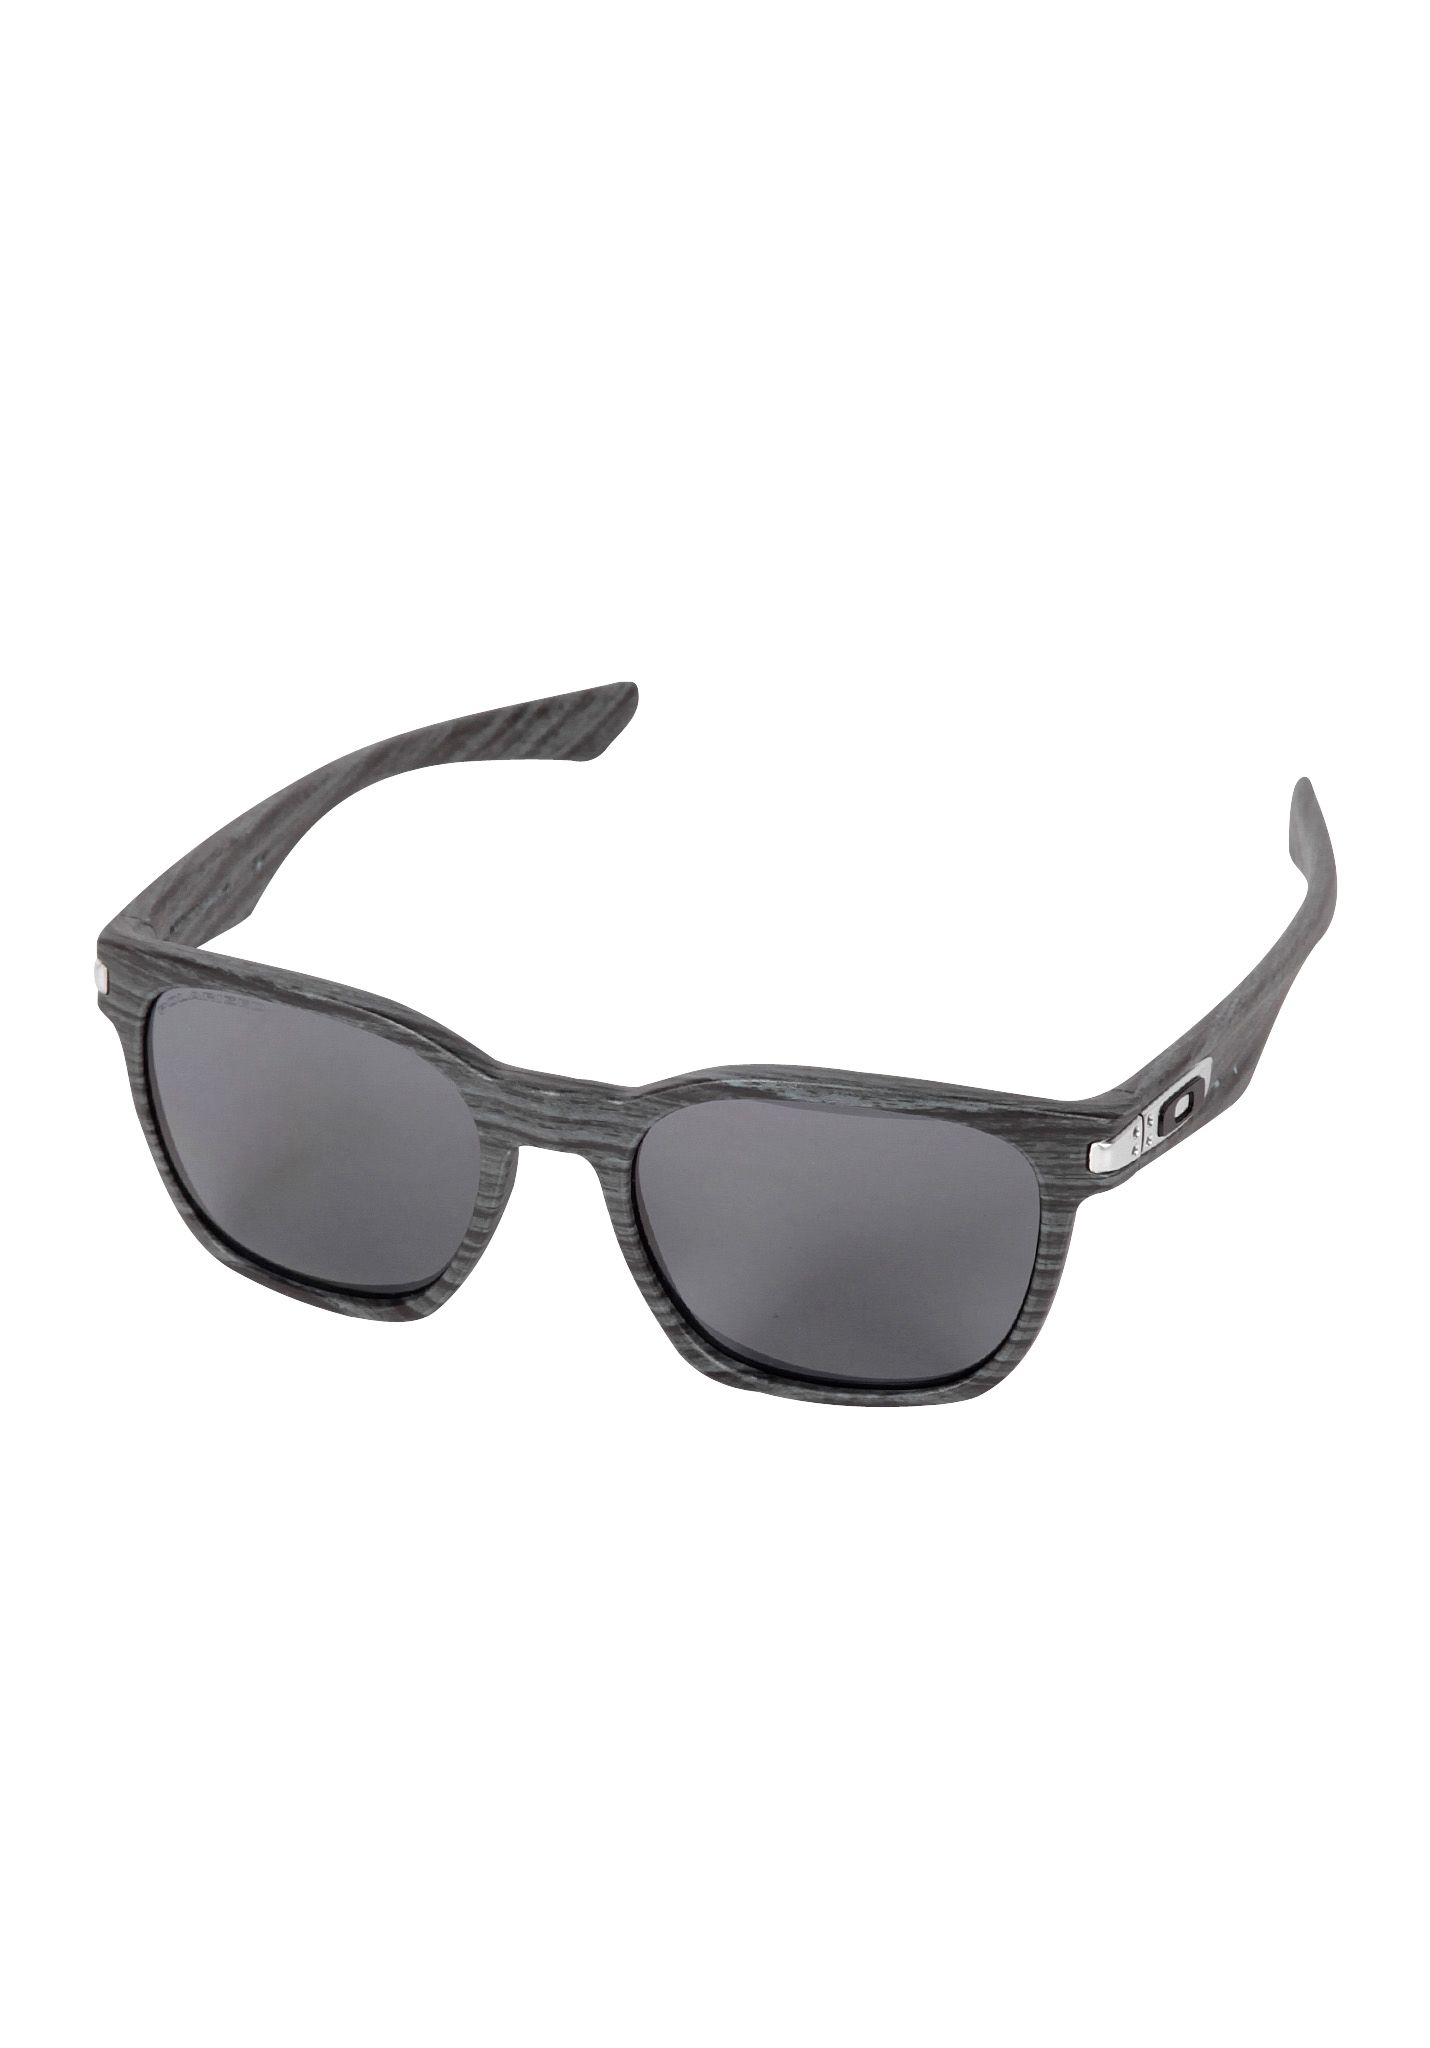 fbf433b6bdf ... low cost oakley garage rock blue woodgrain sunglasses for men blue  planet sports a52b9 42e2d